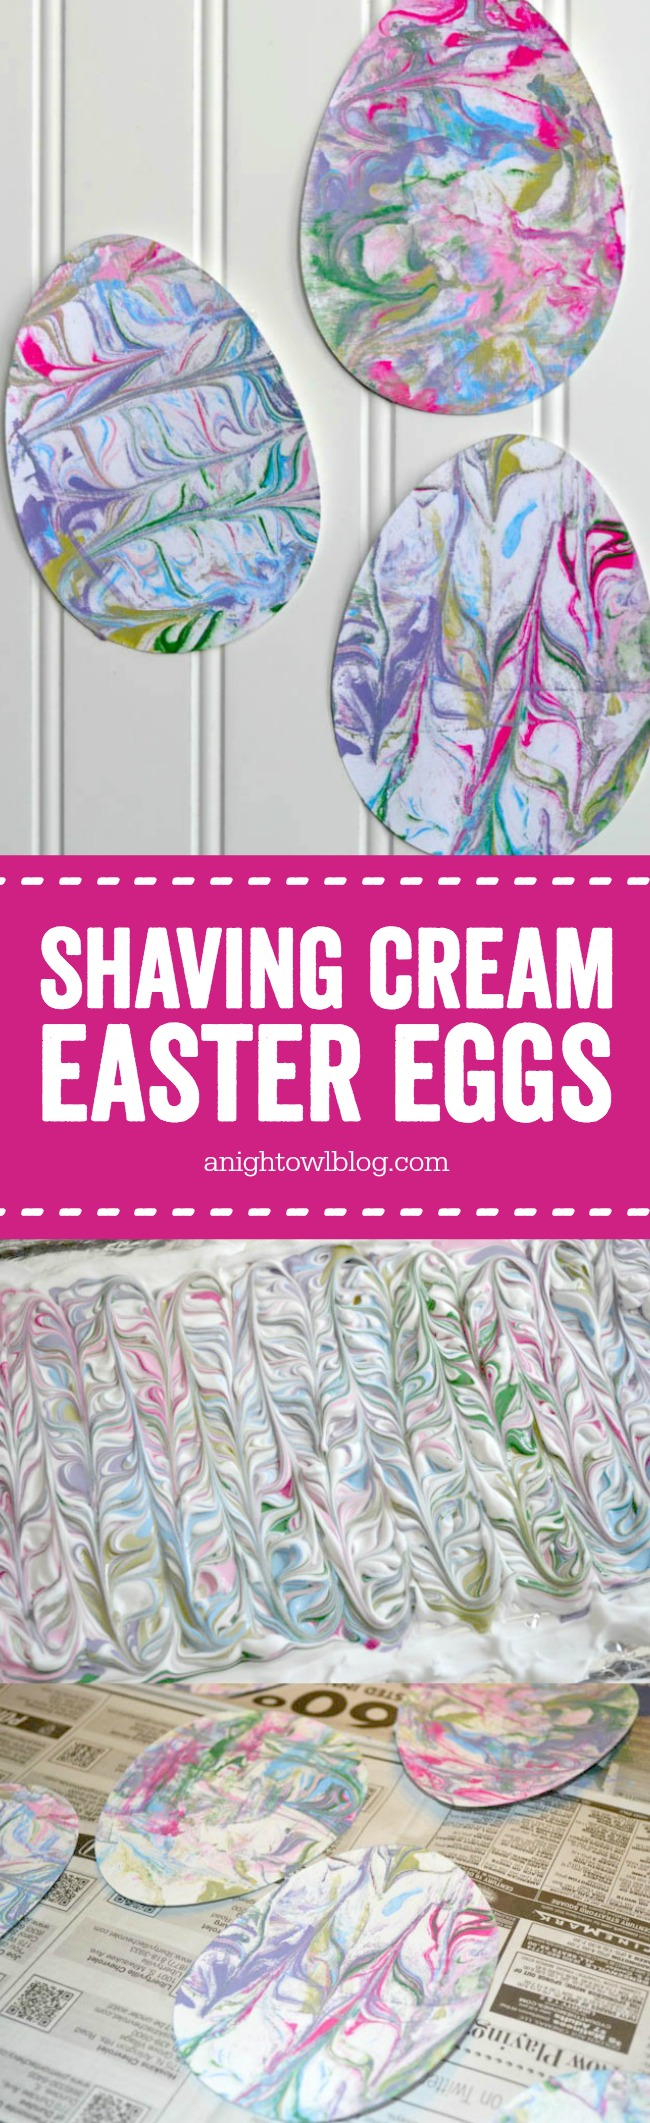 These Shaving Cream Painted Easter Eggs are such a fun and easy sensory Easter Craft for the kiddos!